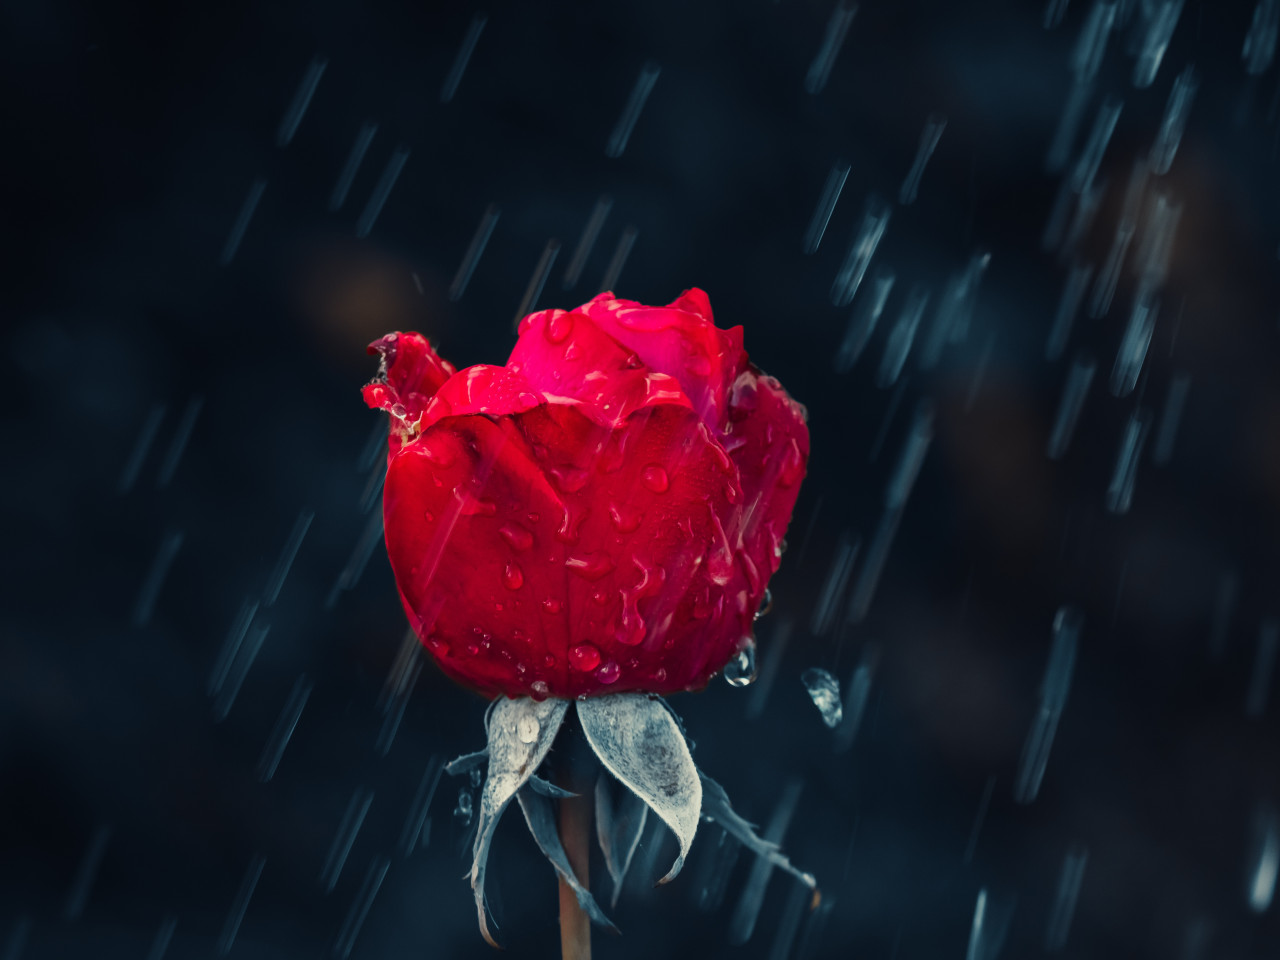 Red rose and raindrops wallpaper 1280x960